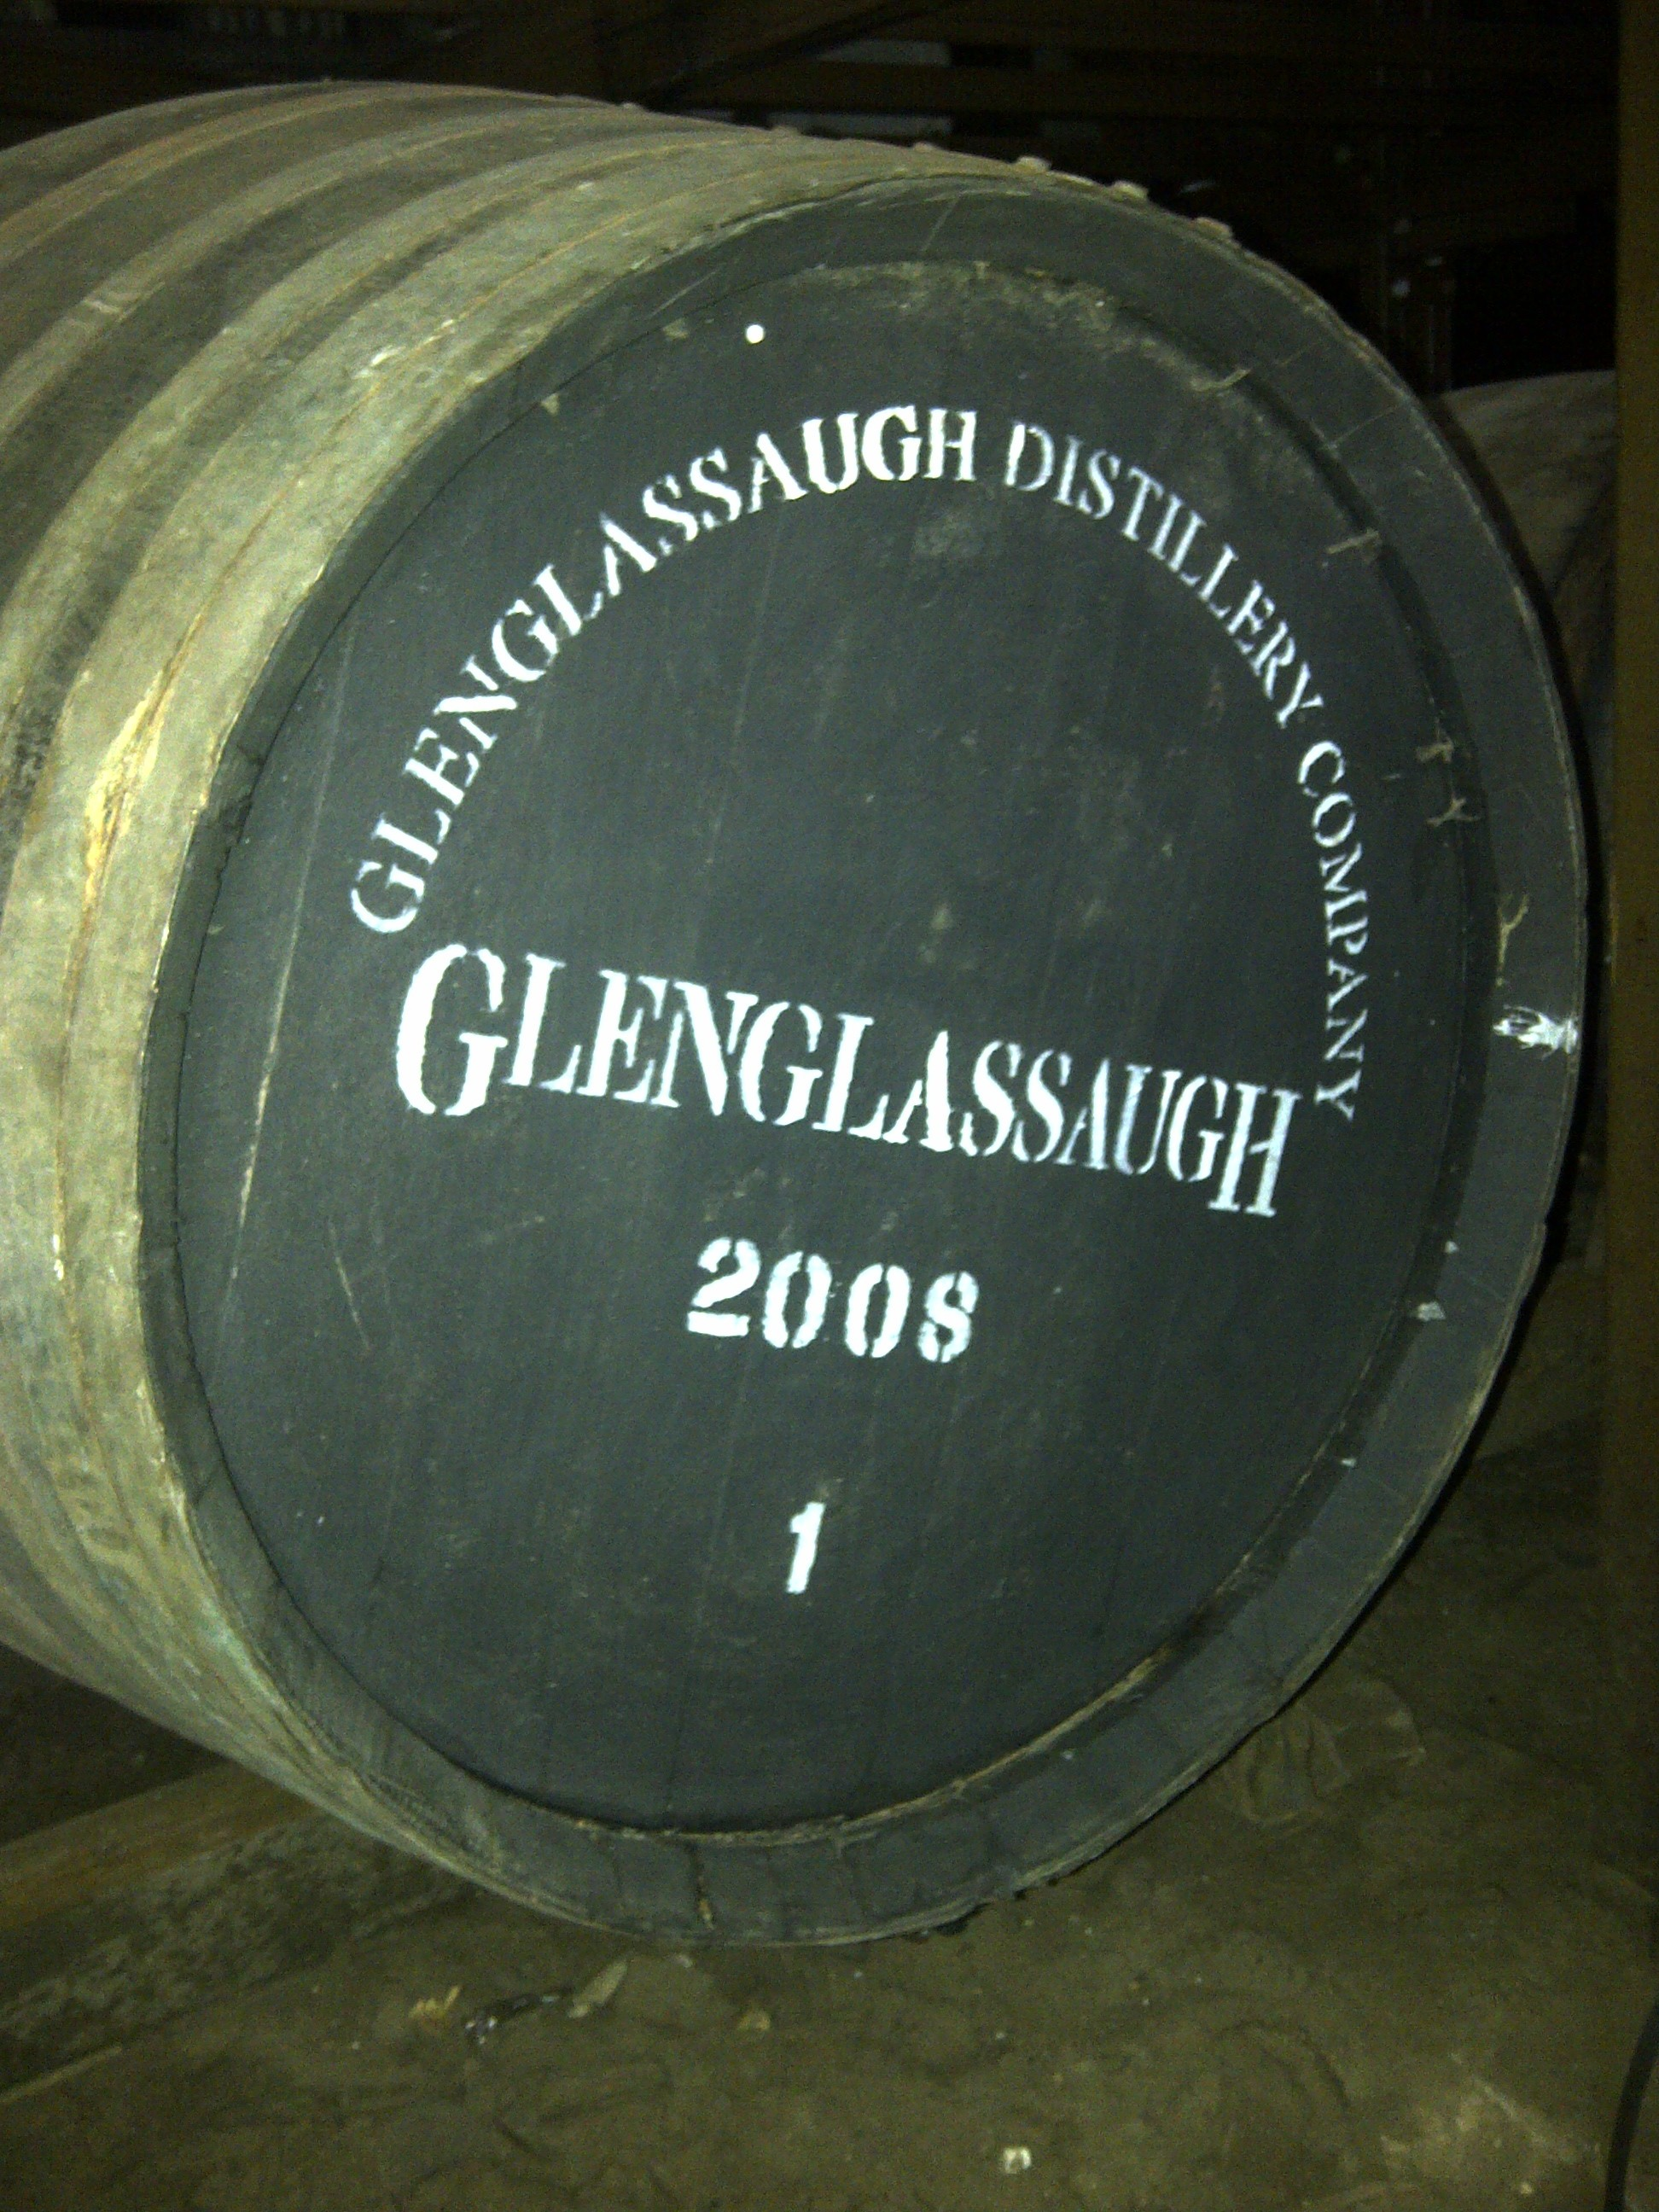 The first cask from the revived Glenglassaugh Distillery.